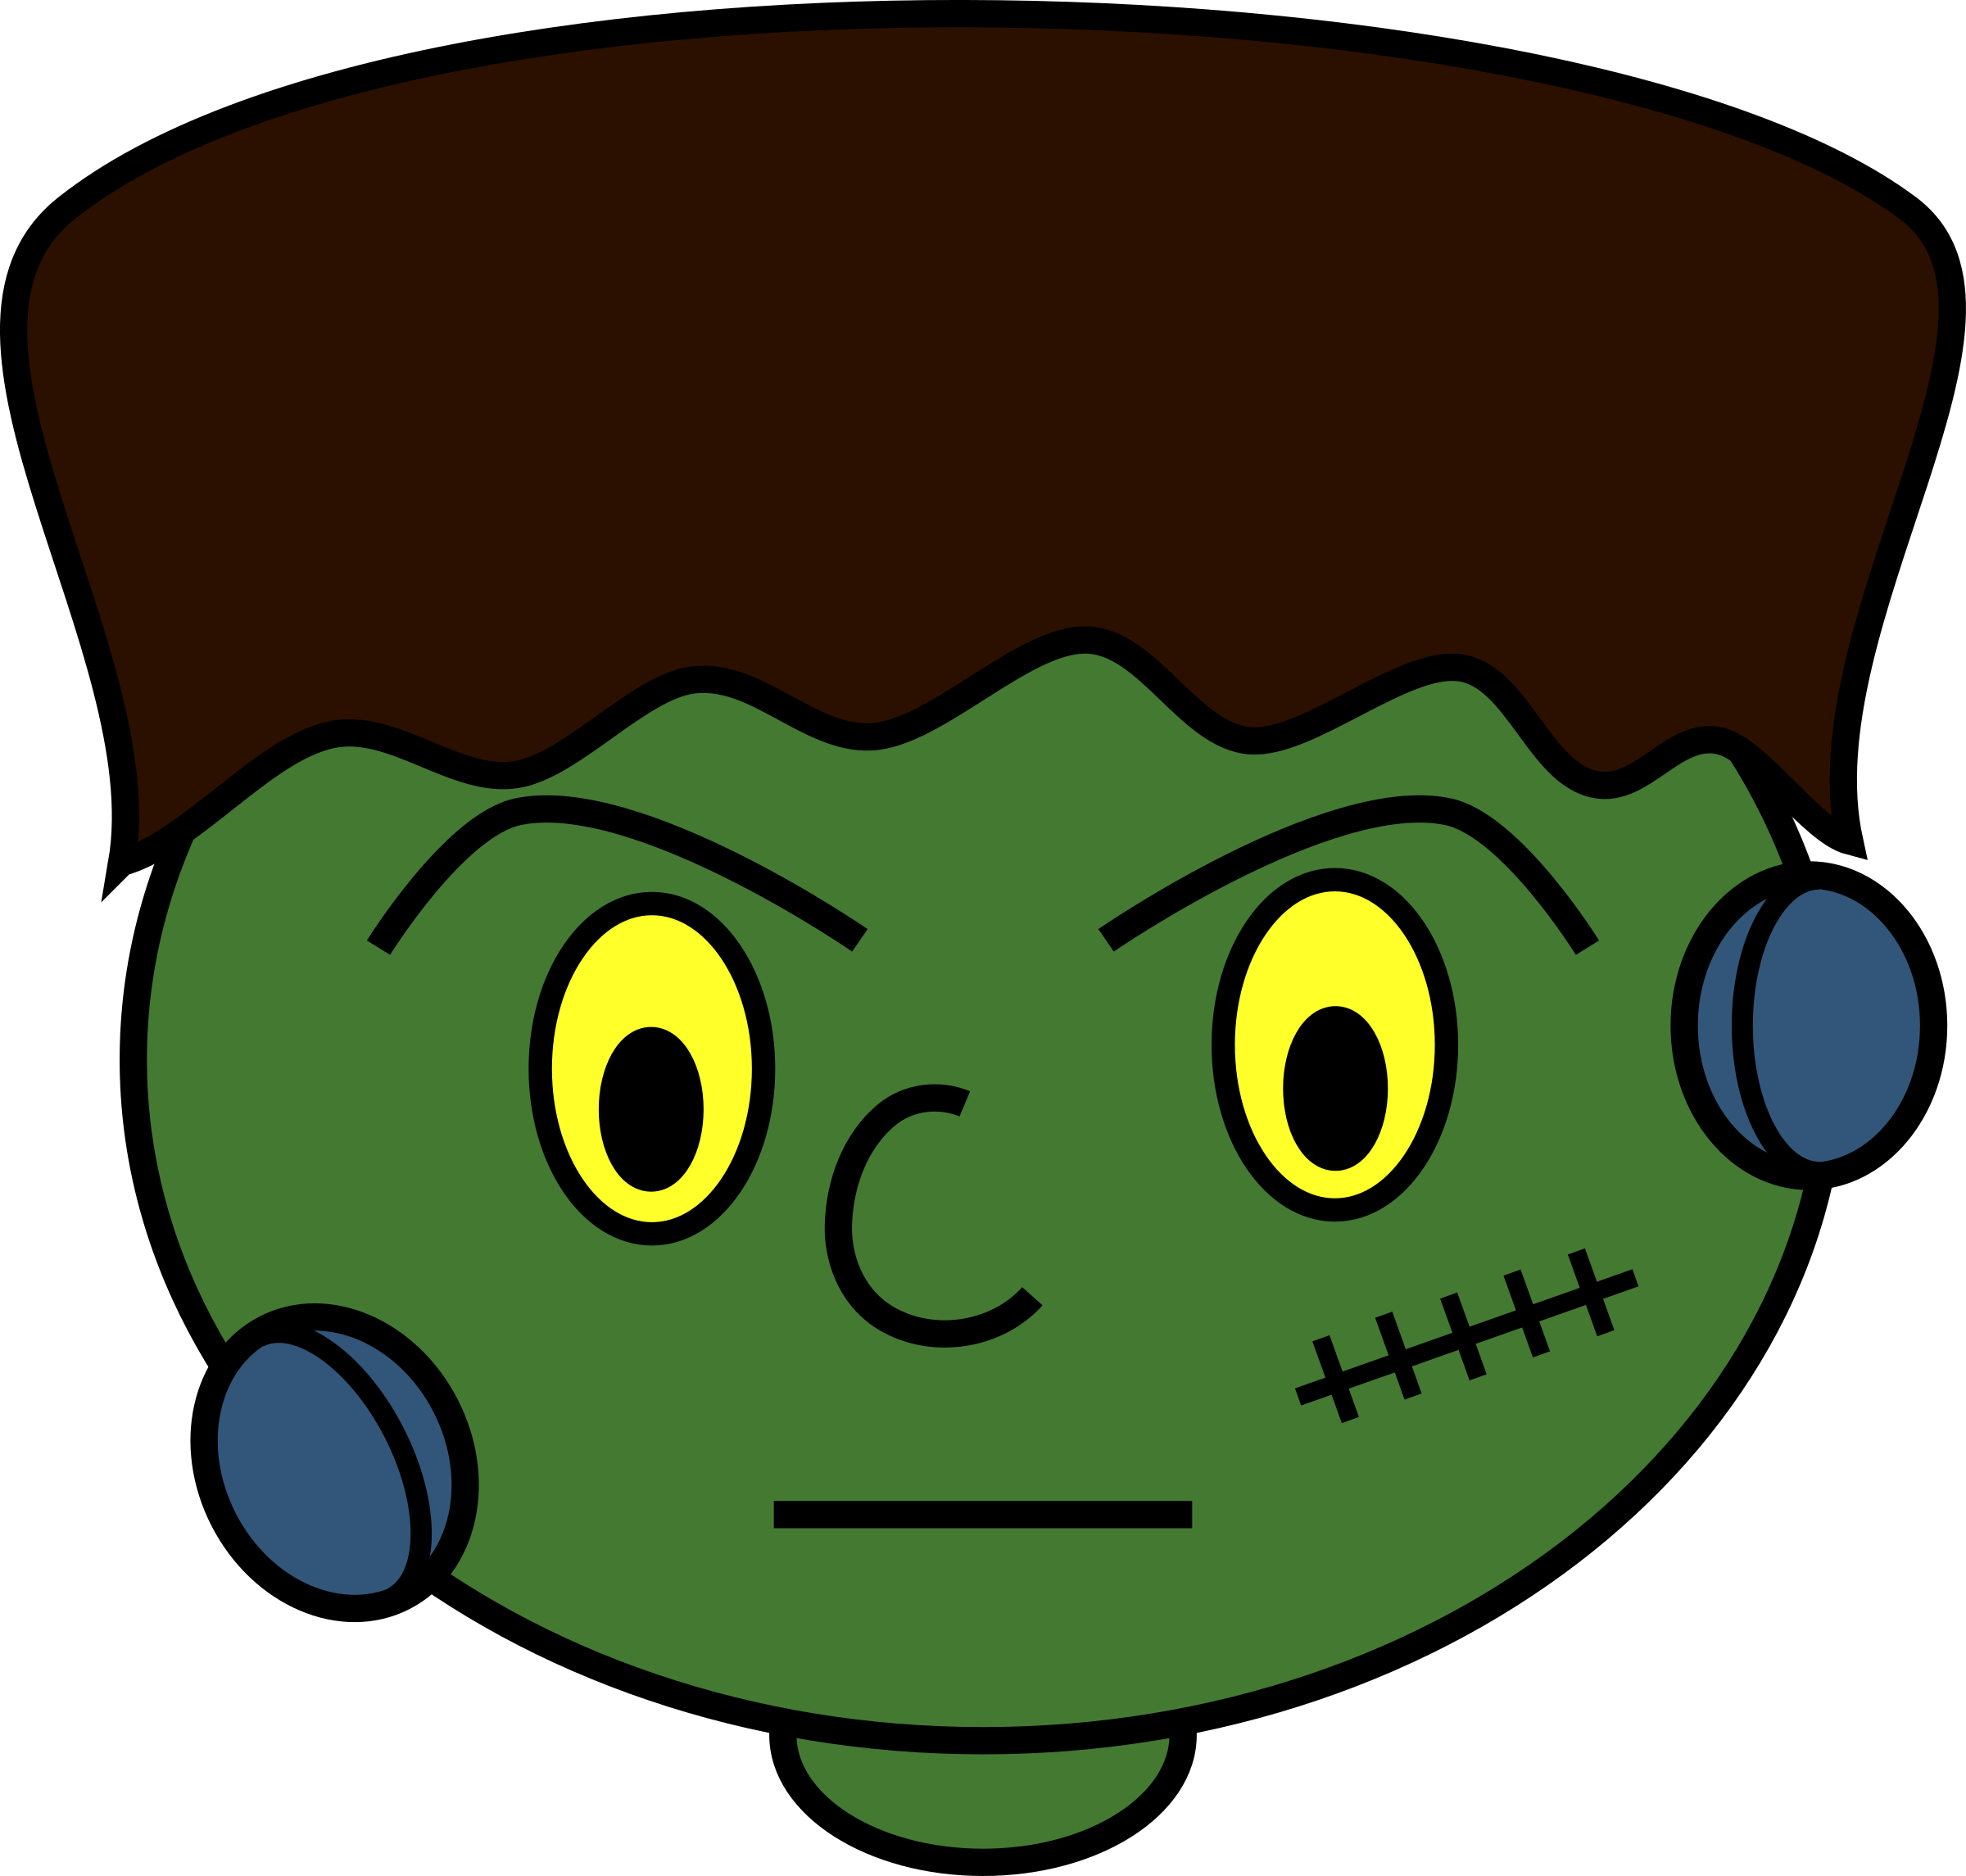 Stitch clipart frankenstein. Group young monster